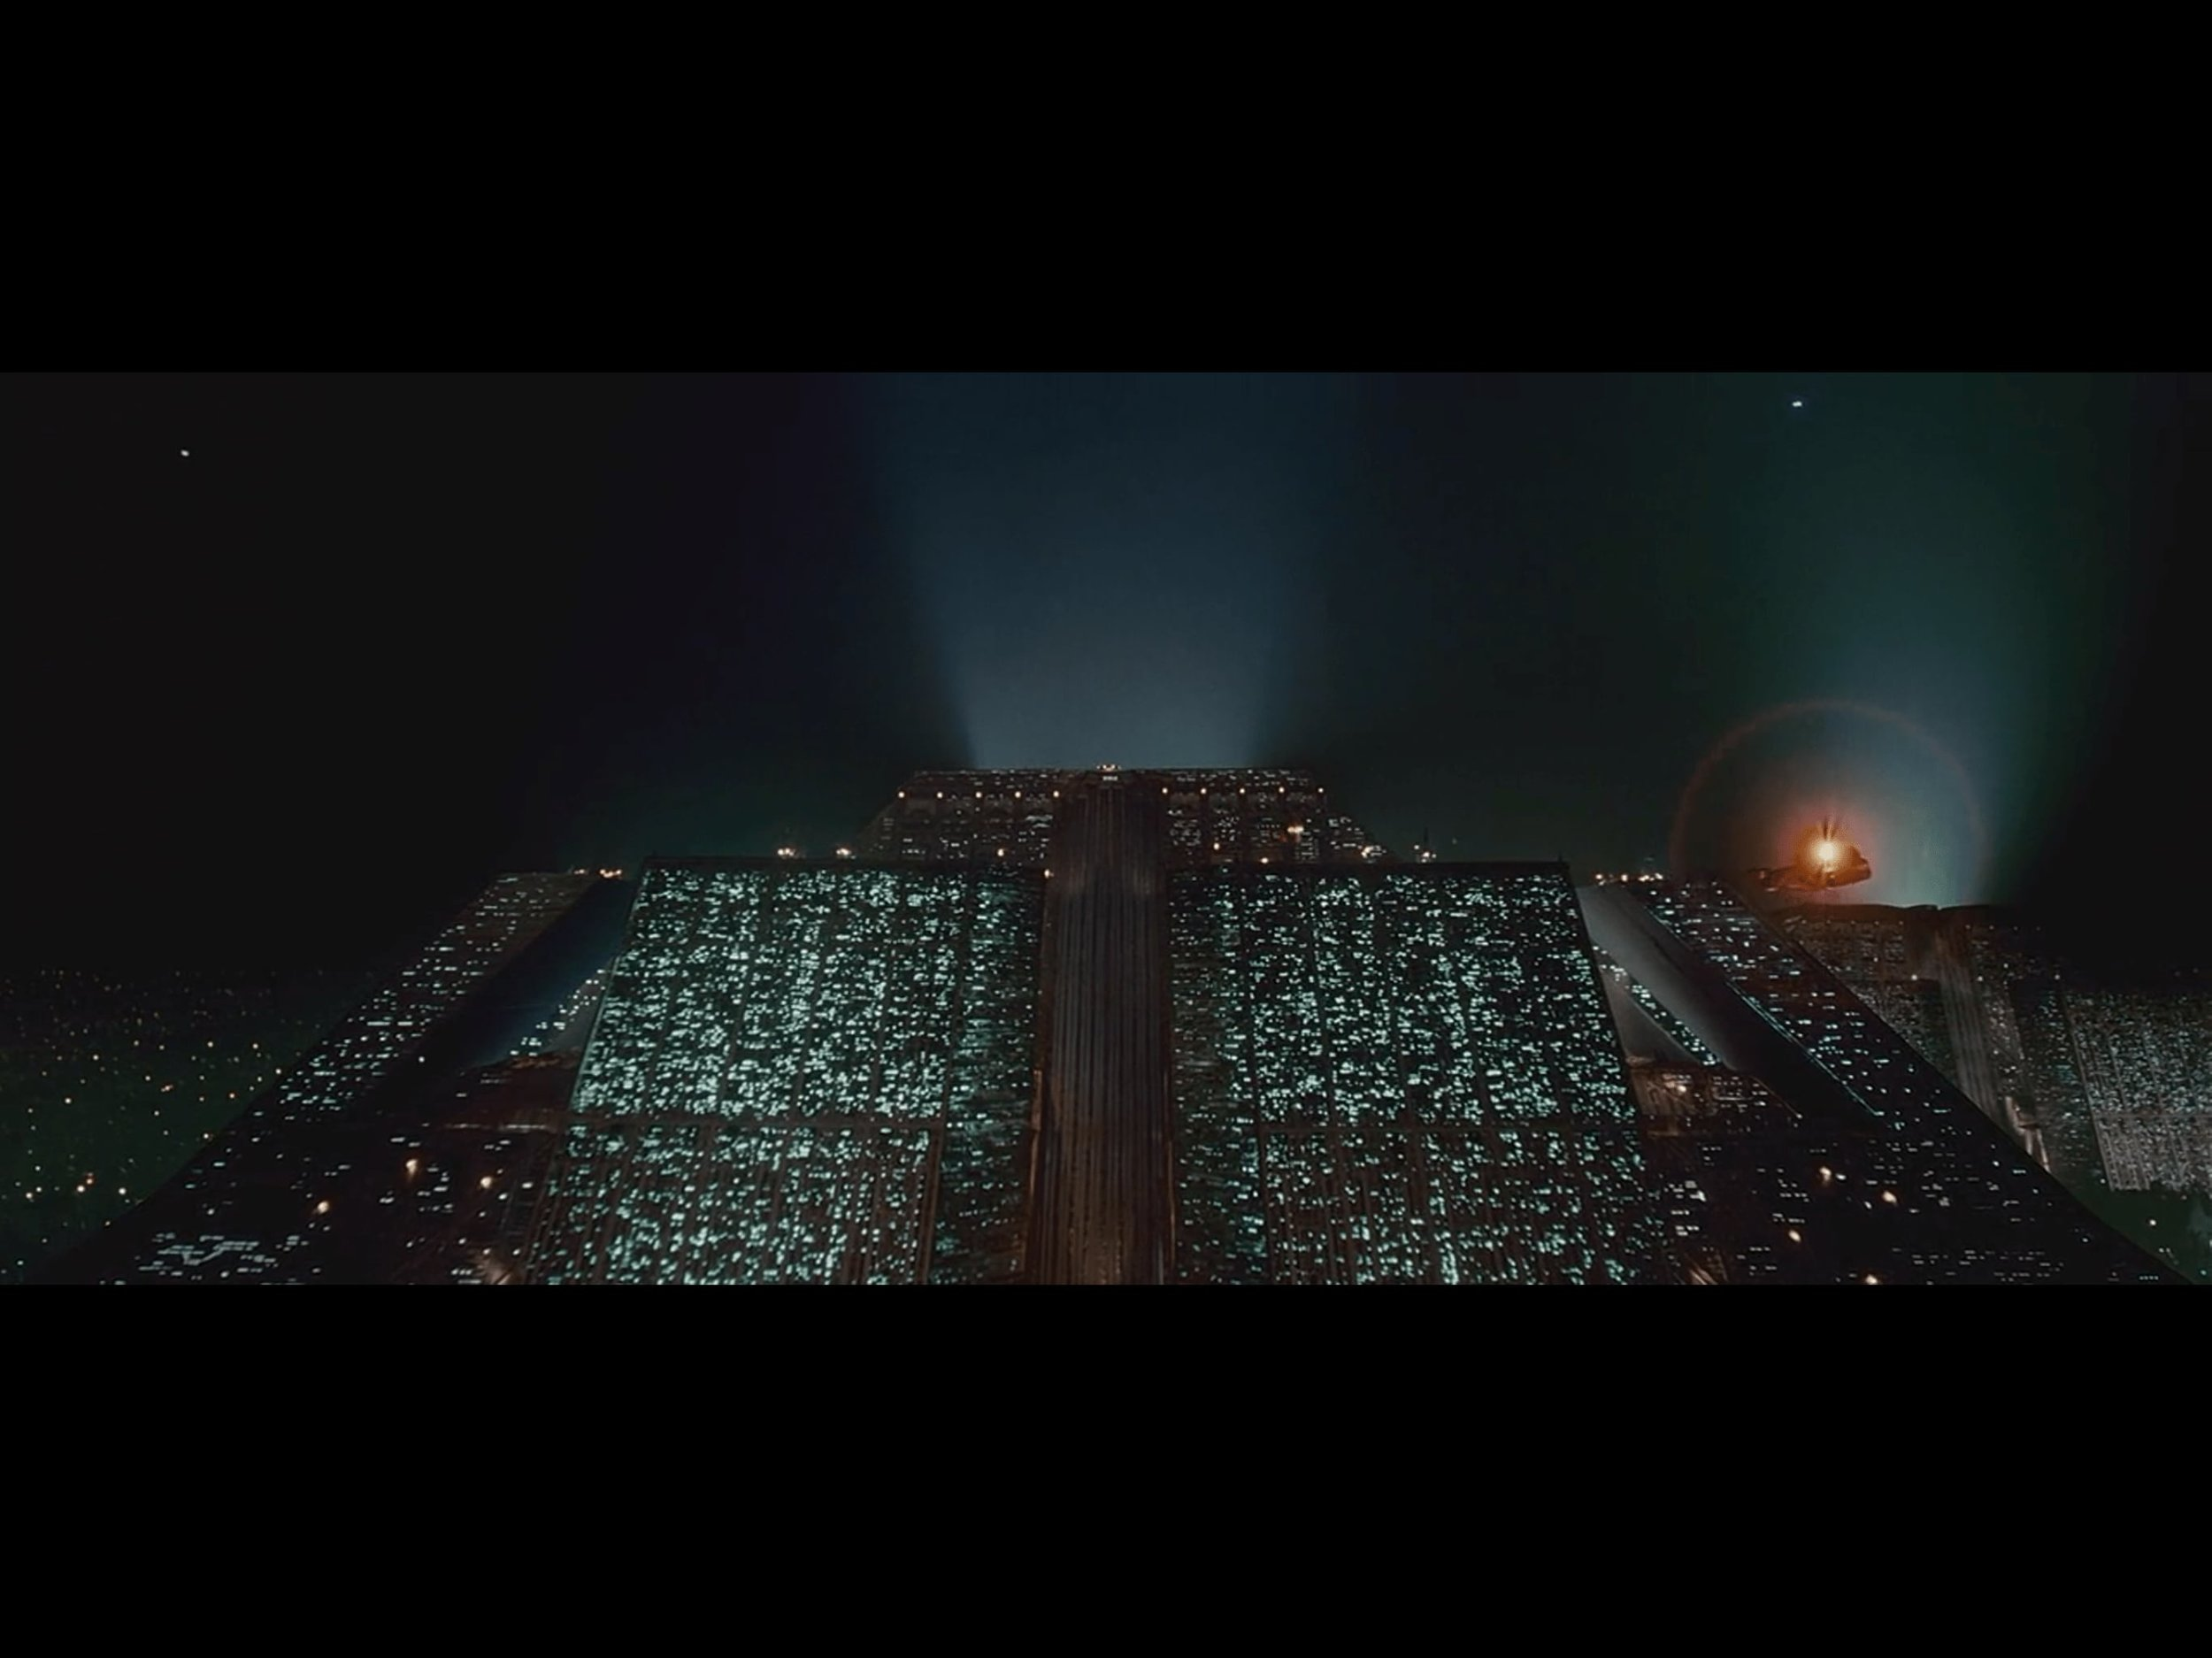 blade-runner-movie-1982-screenshot-2-min.jpg